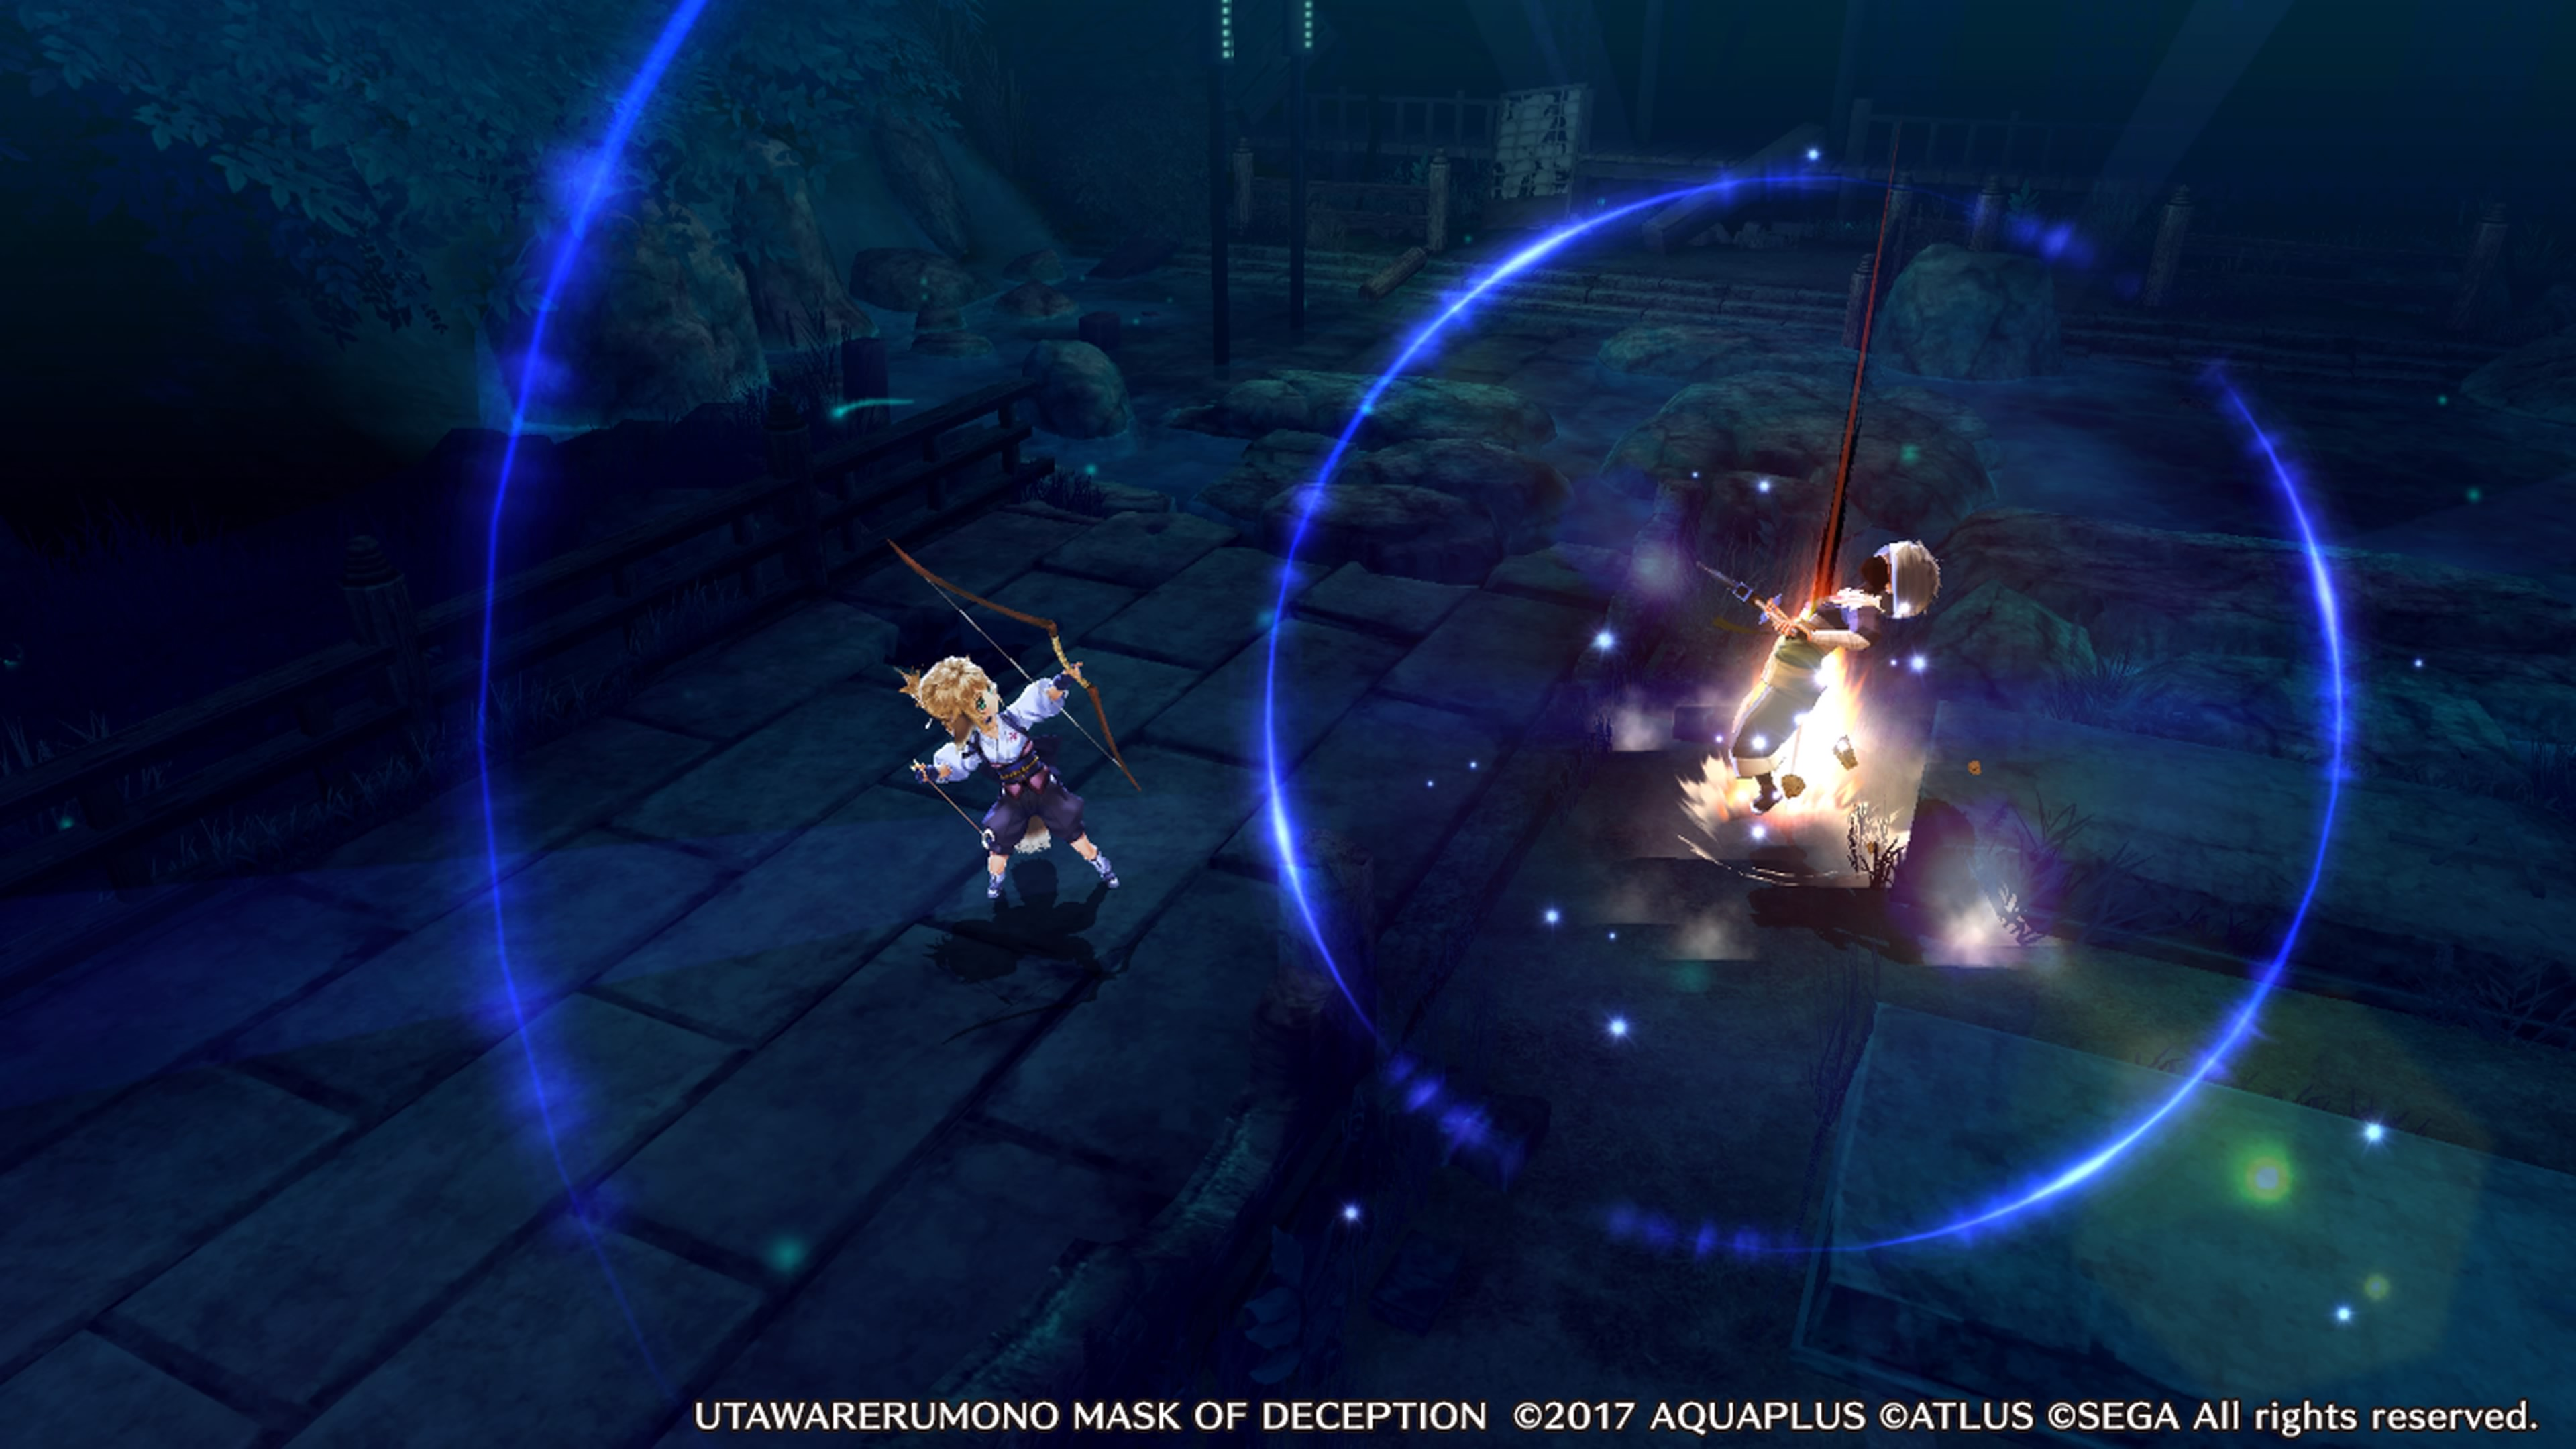 Utawarerumono: Mask of Deception Image